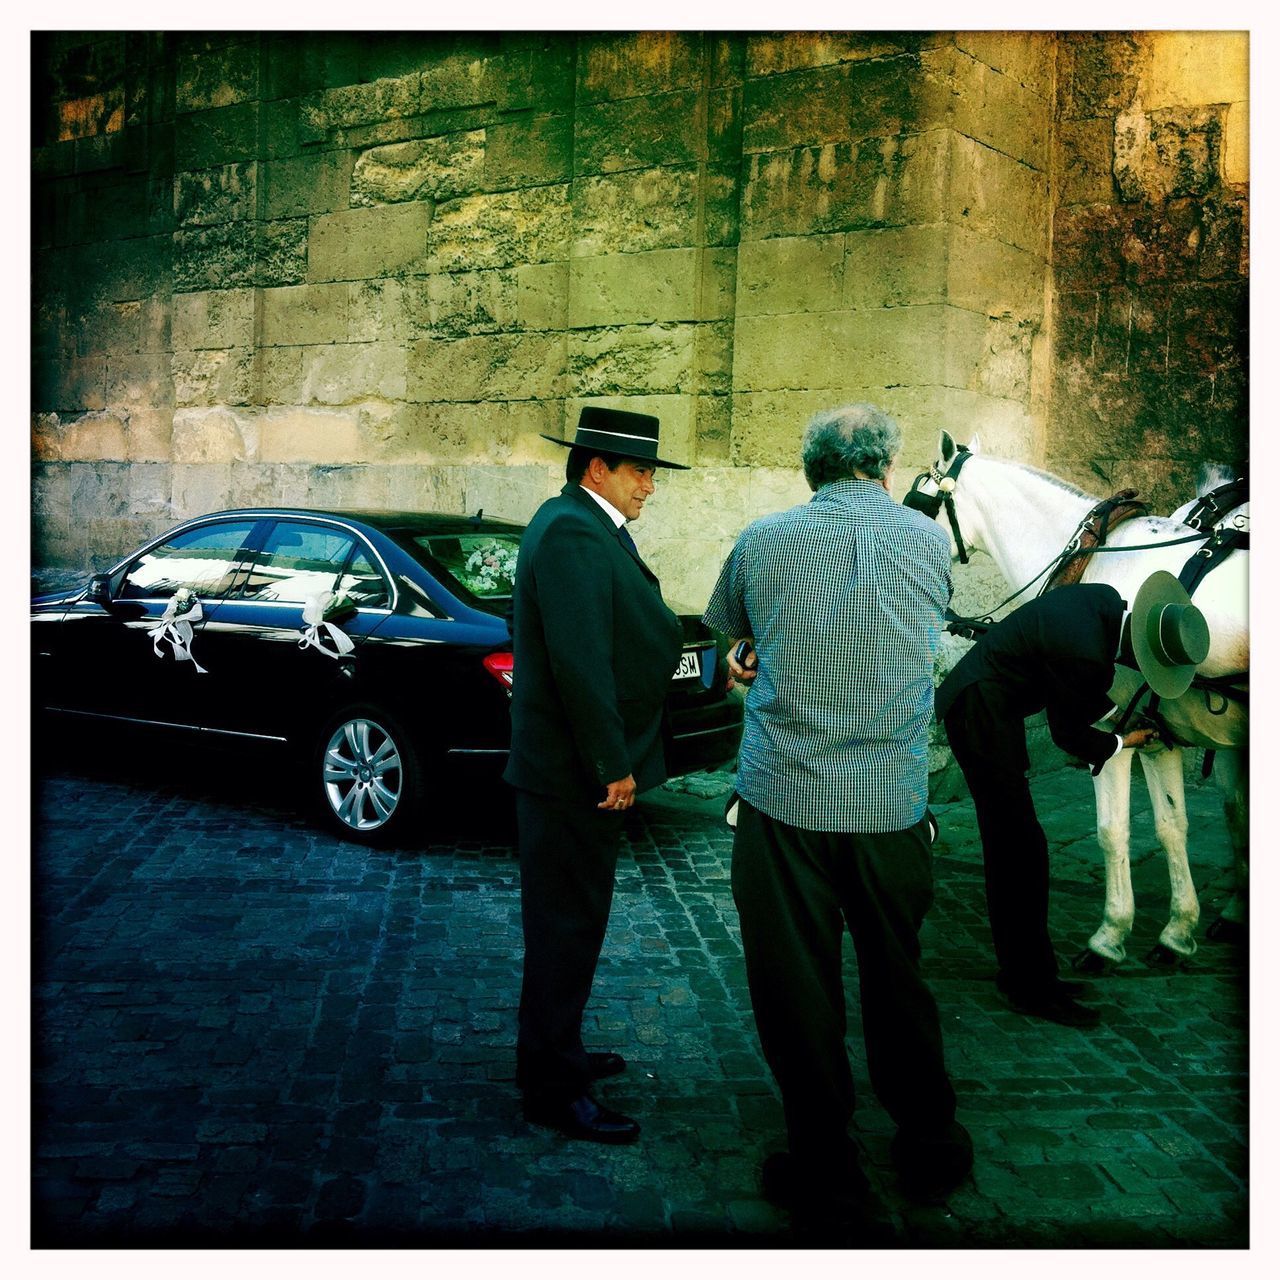 Snap A Stranger Car Men Only Men Full Length Adults Only Togetherness Senior Men Adult People Outdoors Day Hat Sombrero Sombrero Cordobés Real People Horse Córdoba Cordoba Spain Serie Barrio Iphone4 Iphoneonly Hipstamatic Mezquita De Córdoba Mezquitacatedraldecórdoba